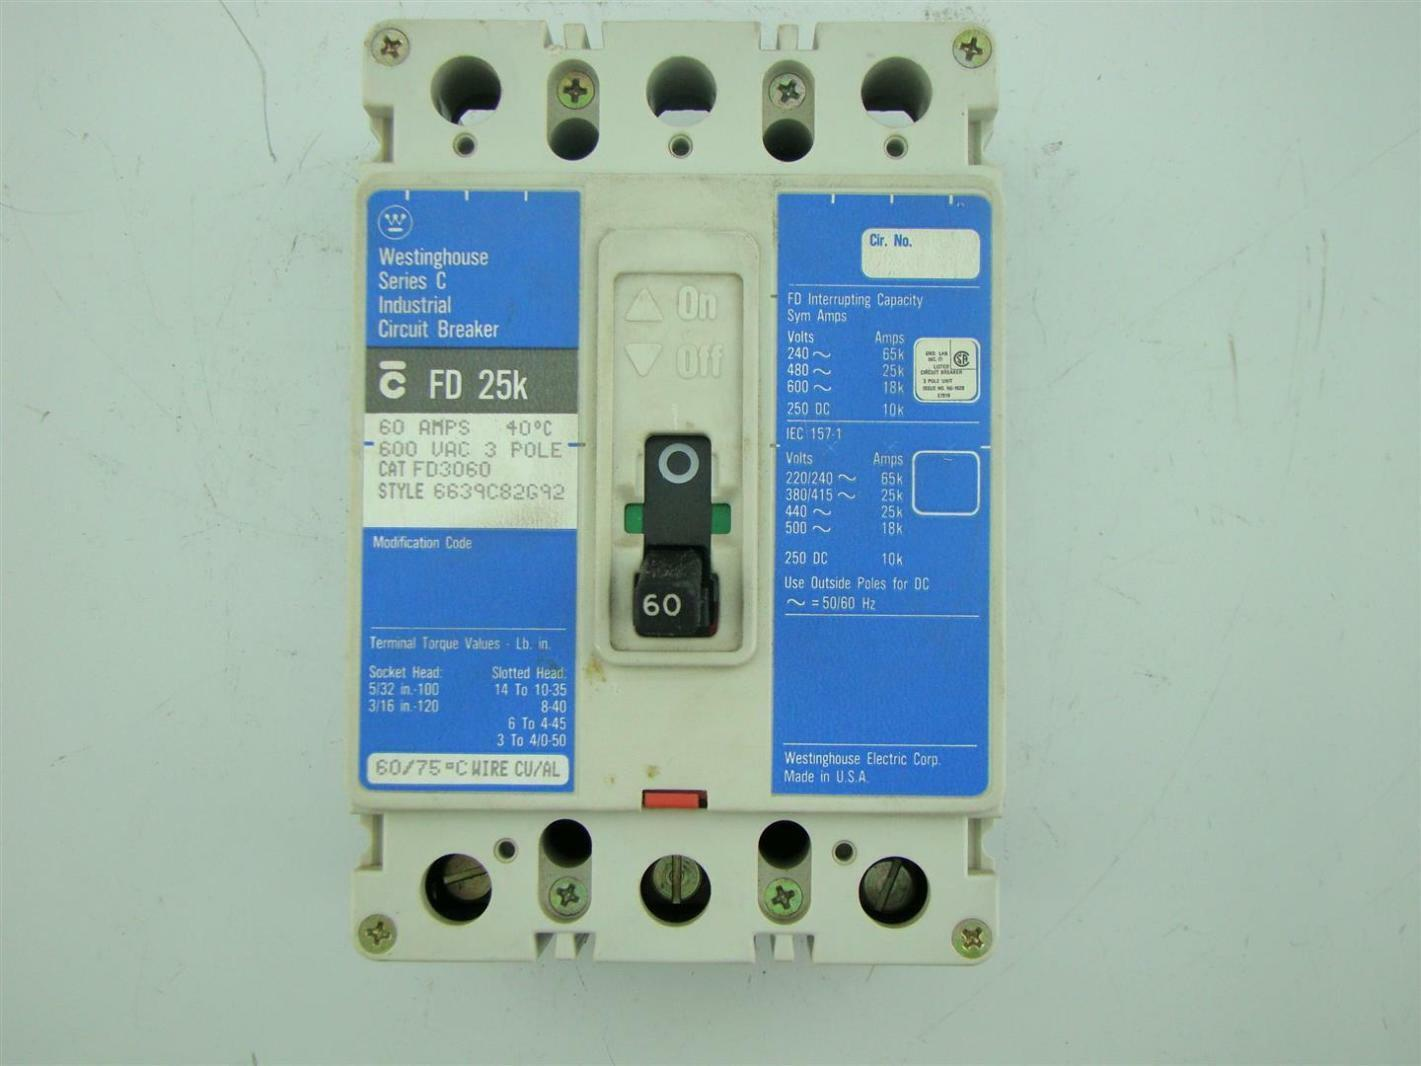 hight resolution of  cutler hammer circuit breaker fd 25k 3 pole 100 amps